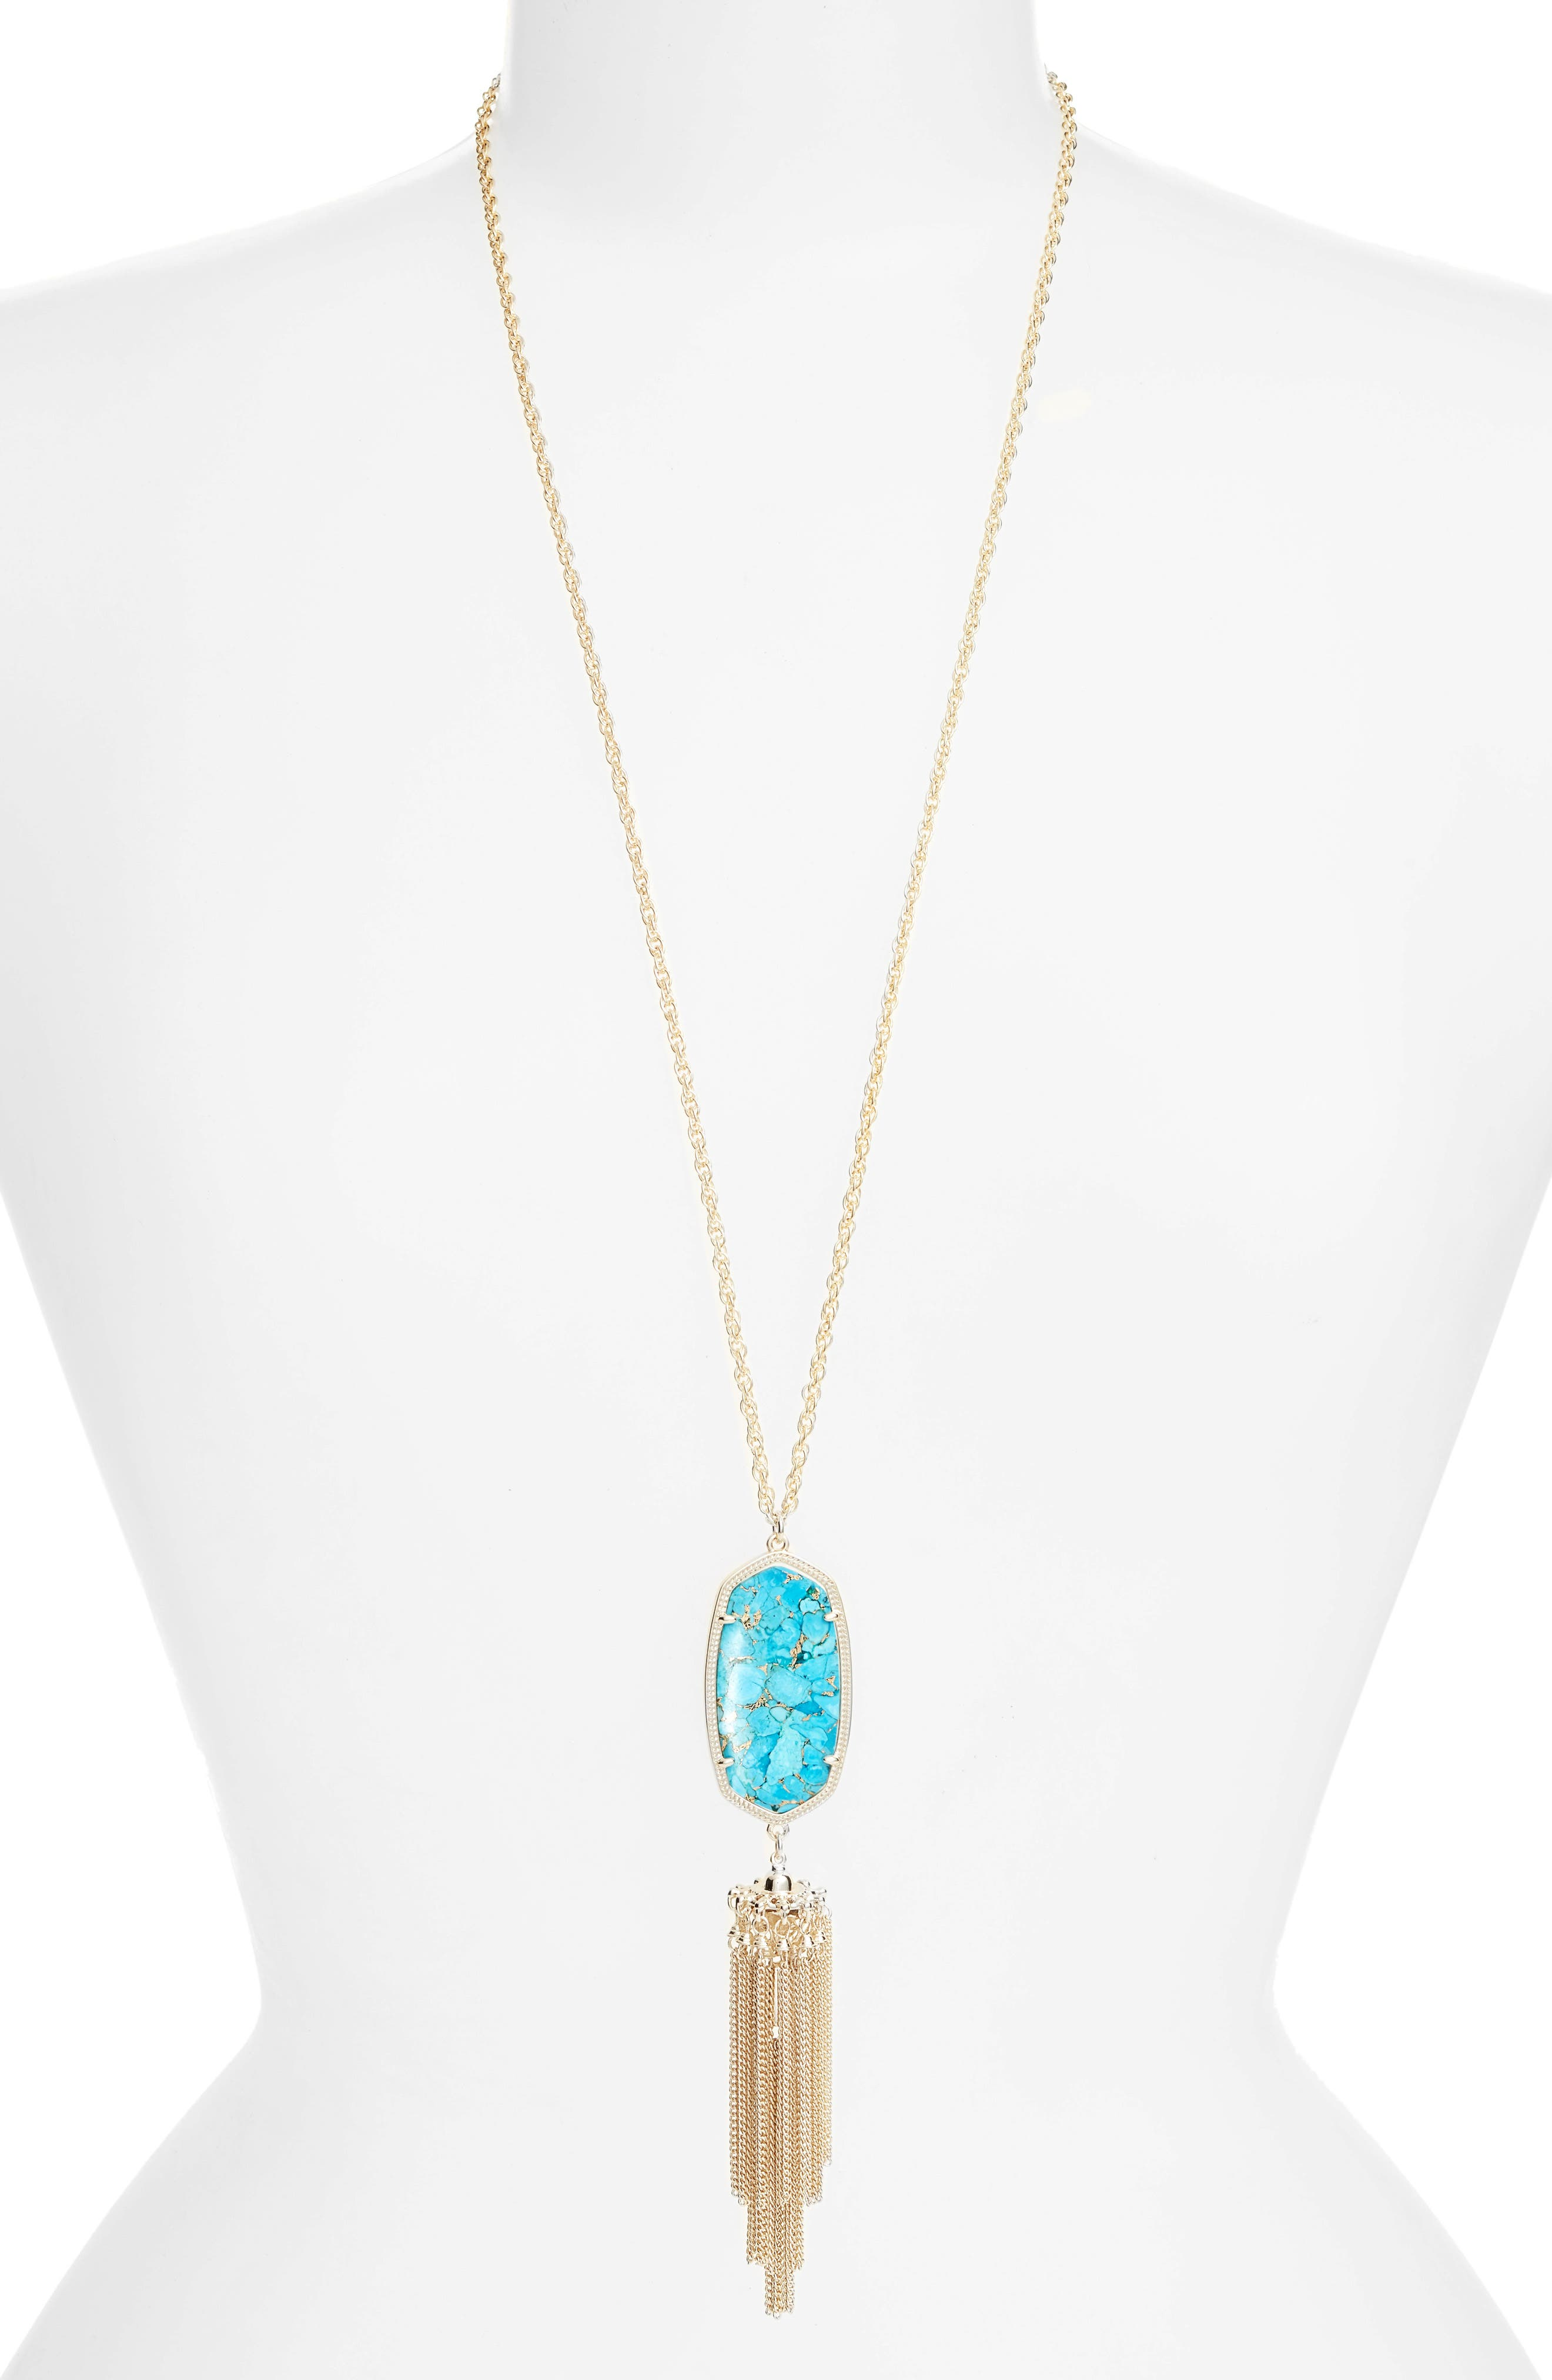 Rayne Stone Tassel Pendant Necklace,                         Main,                         color, Bronze Veined Turquoise/ Gold